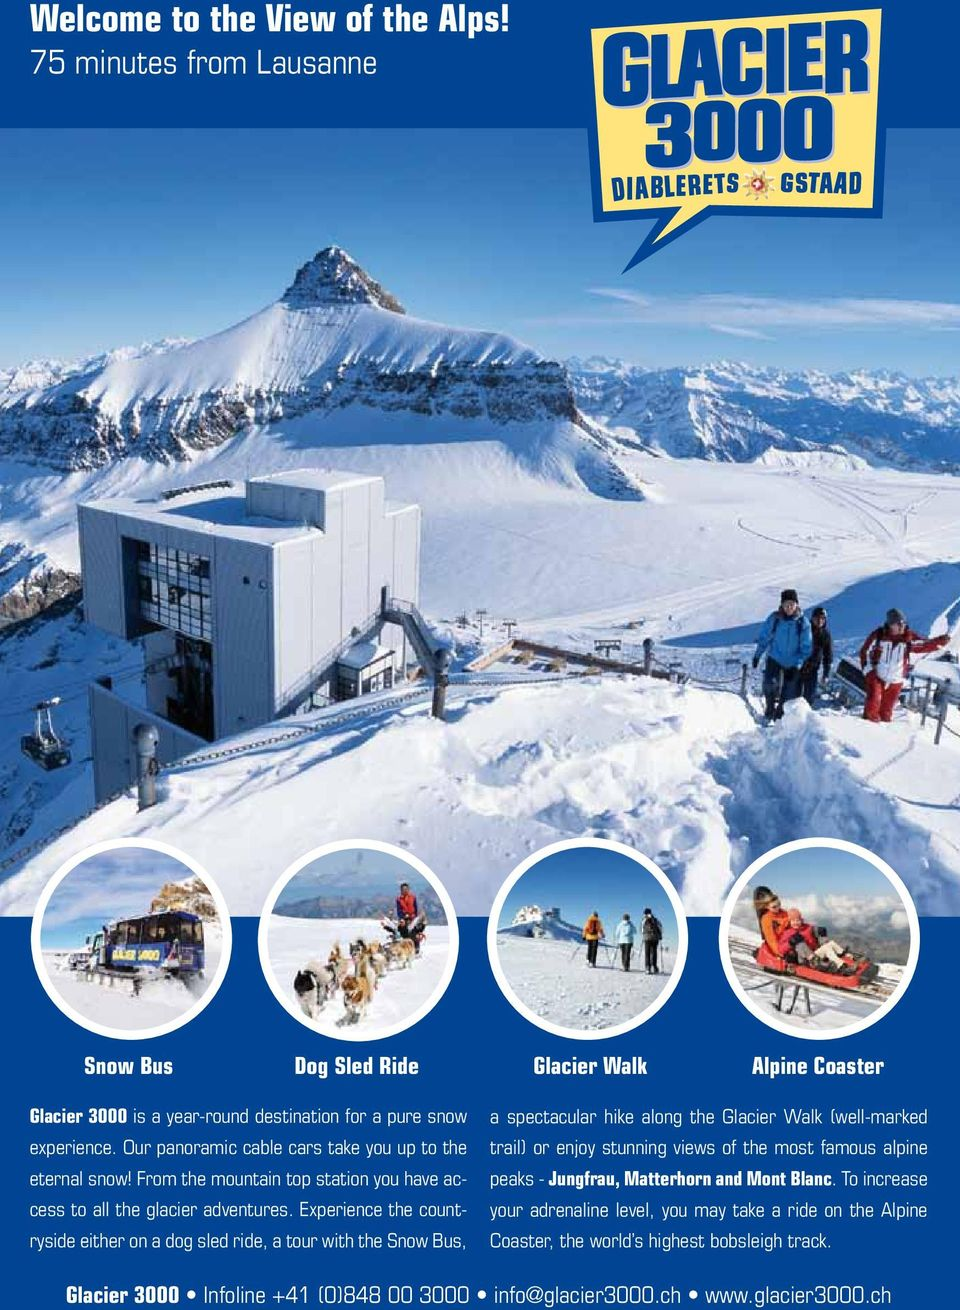 Experience the countryside either on a dog sled ride, a tour with the Snow Bus, a spectacular hike along the Glacier Walk (well-marked trail) or enjoy stunning views of the most famous